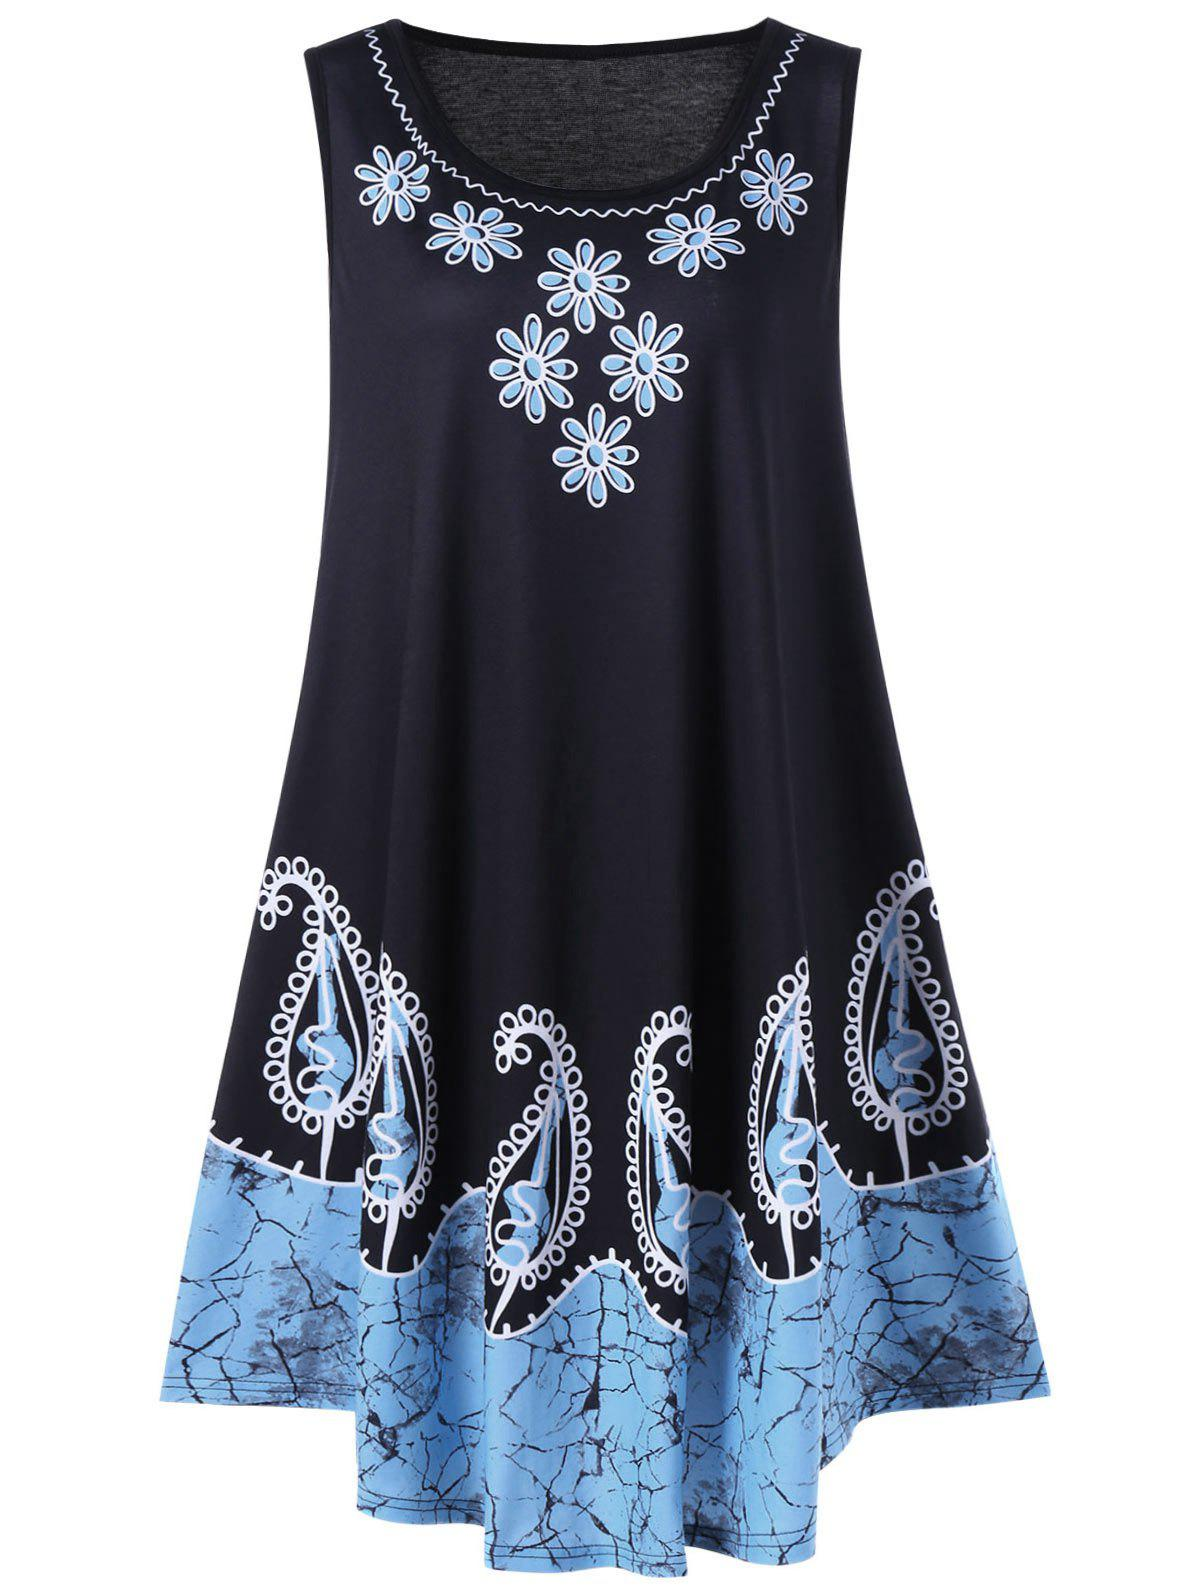 Plus Size Floral and Paisley Sleeveless Dress - BLACK/BLUE 4XL